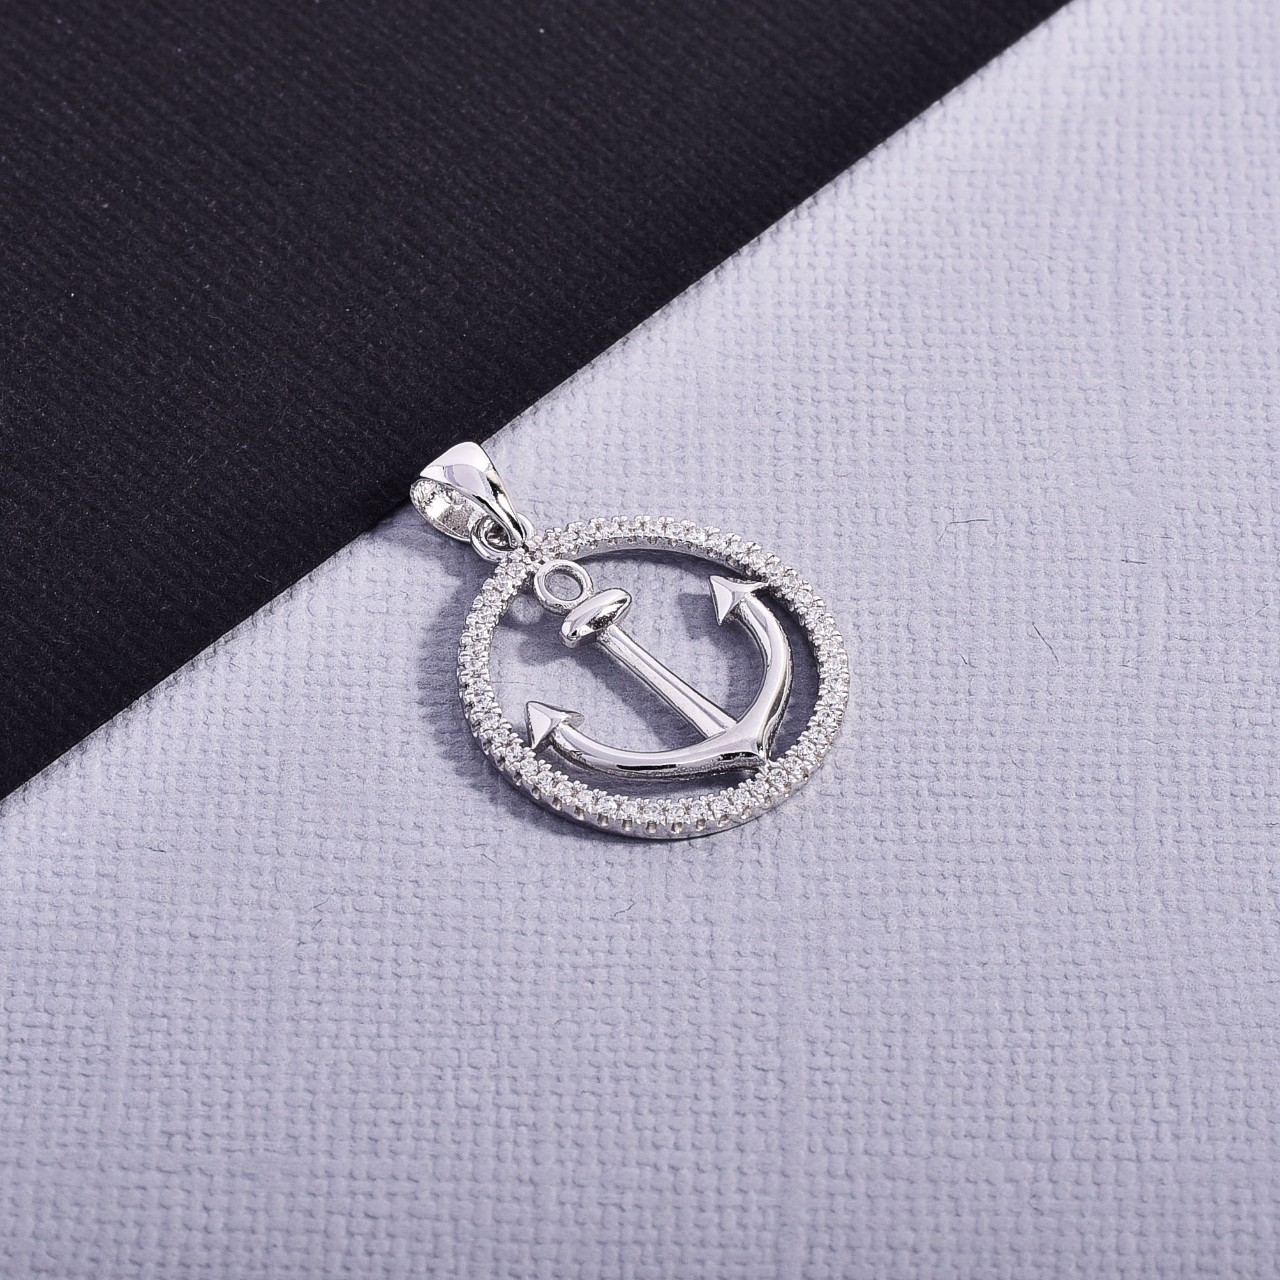 Product Image 1 - Sterling Silver Anchor Pendant   Fair